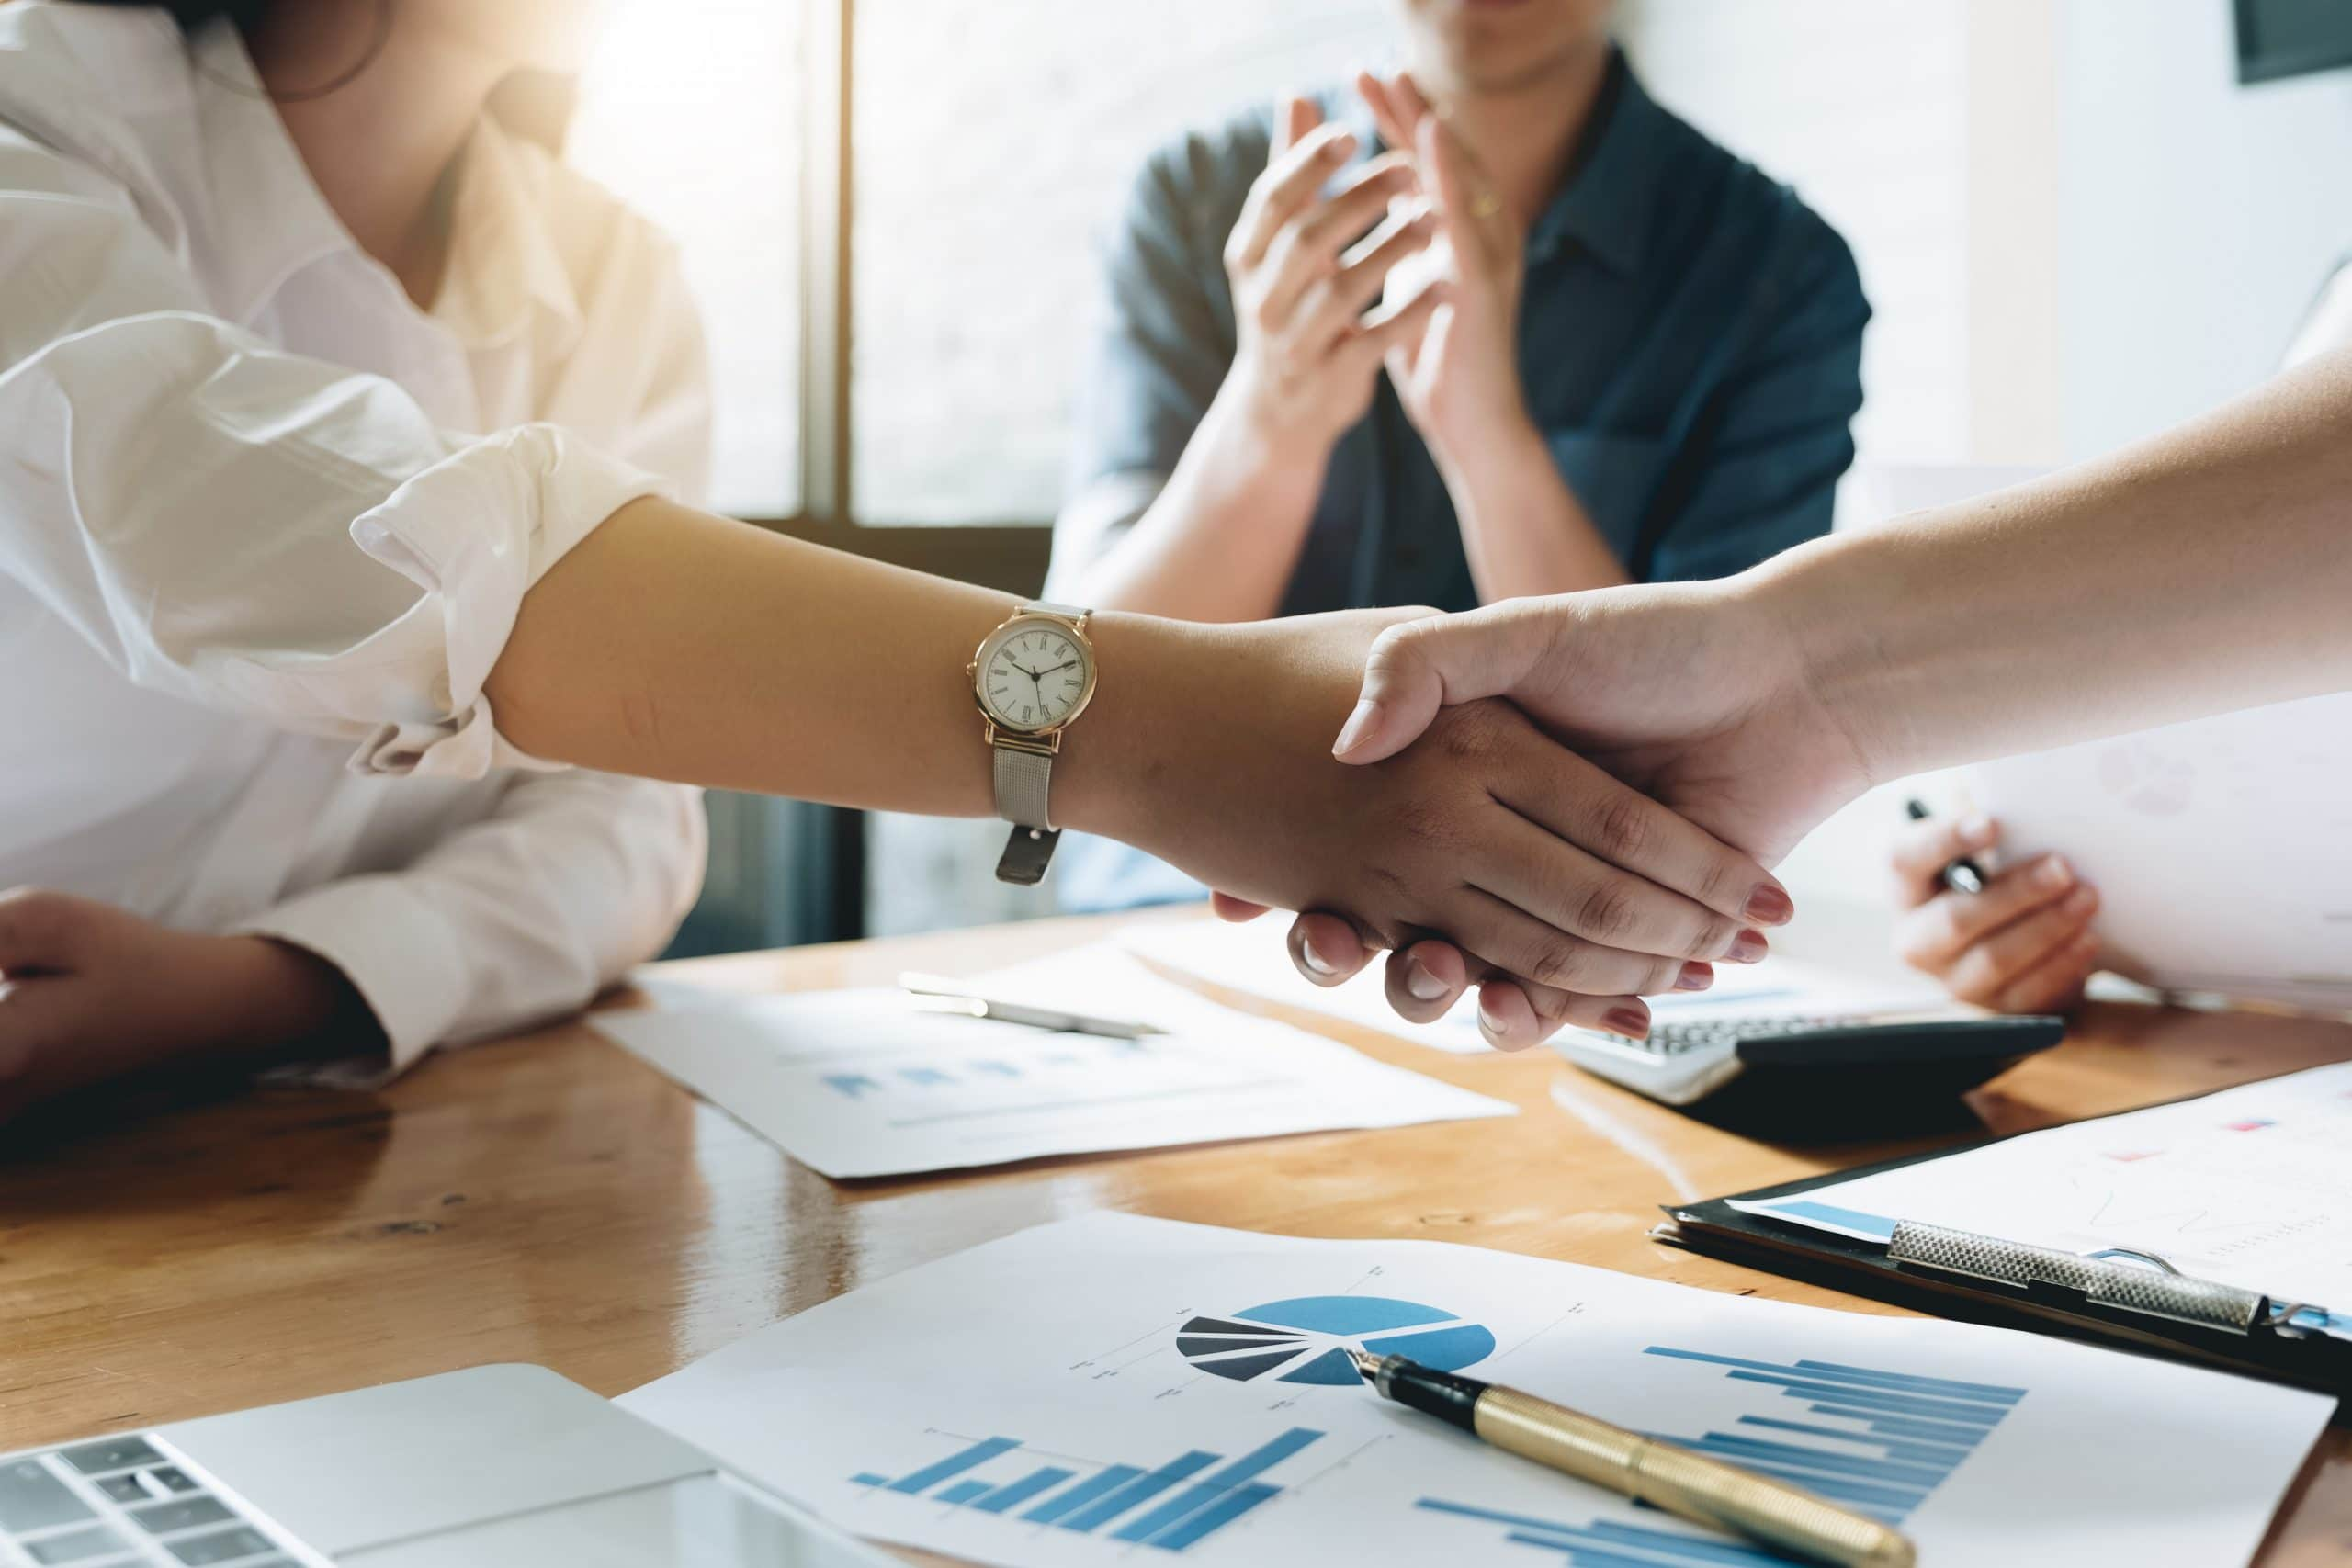 Close up of Business people shaking hands, finishing up meeting, business etiquette, congratulation, post merger integration and acquisition concept